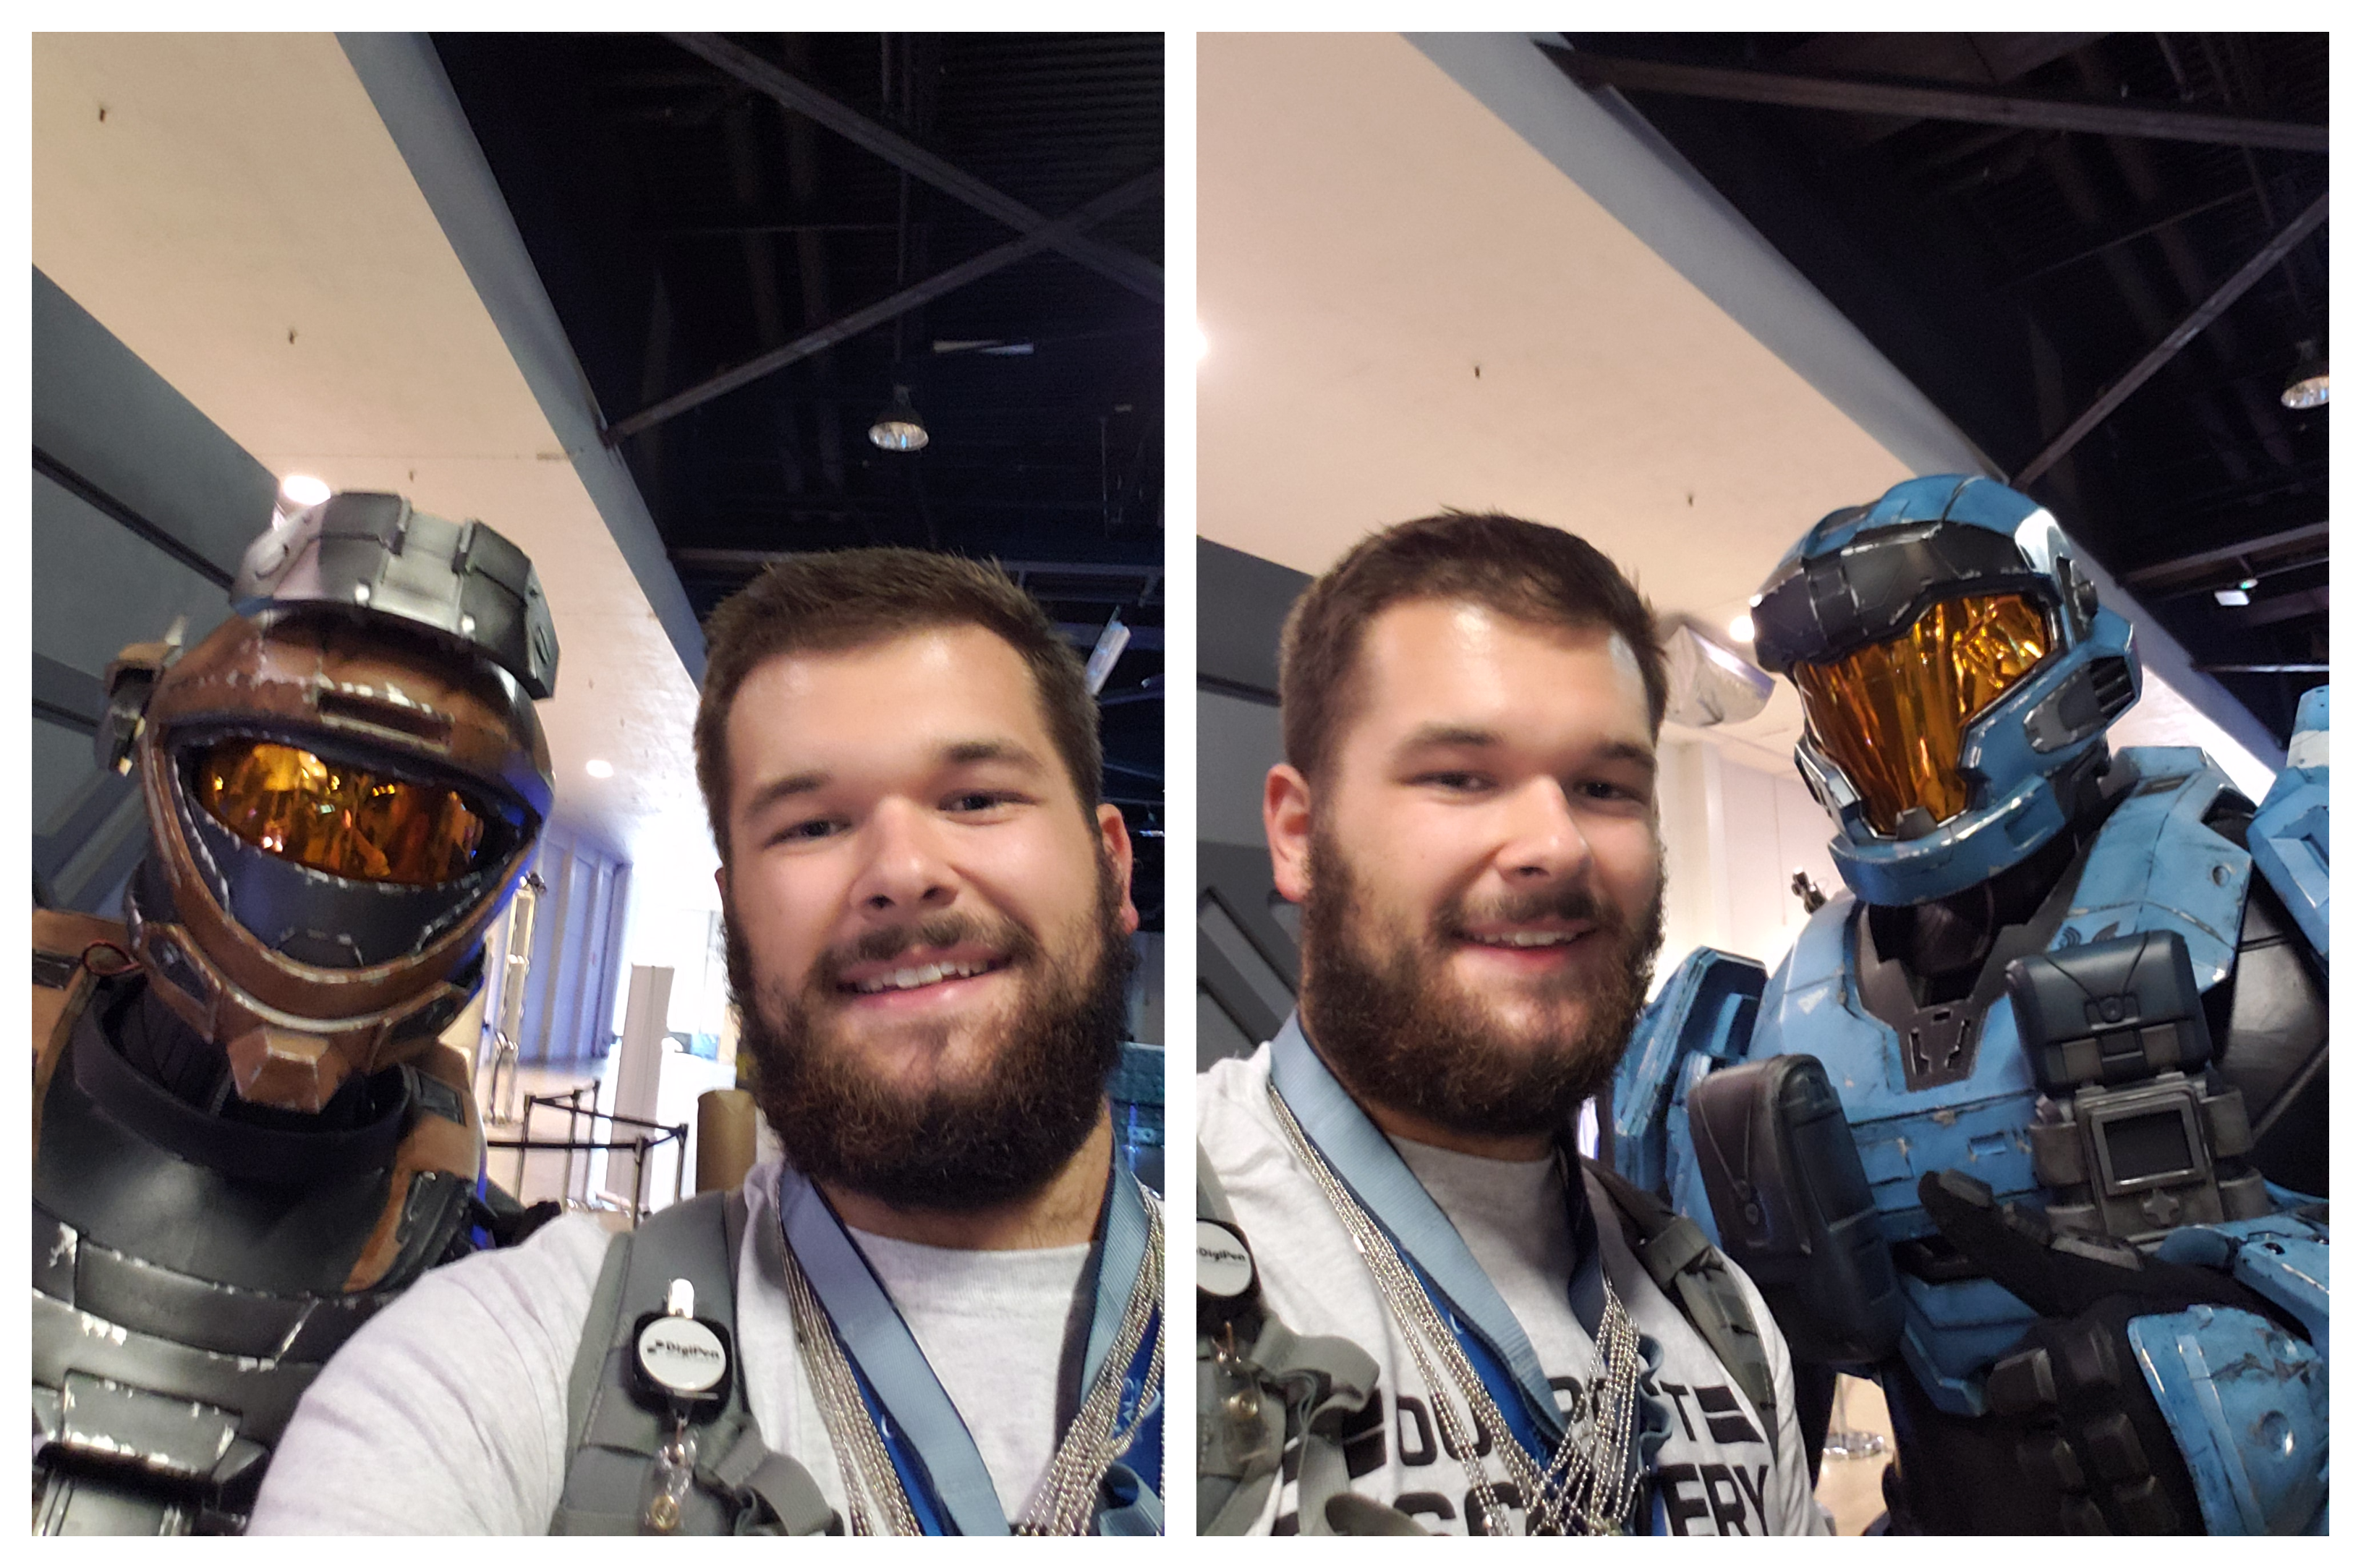 Outpost Discovery Spartan Selfies